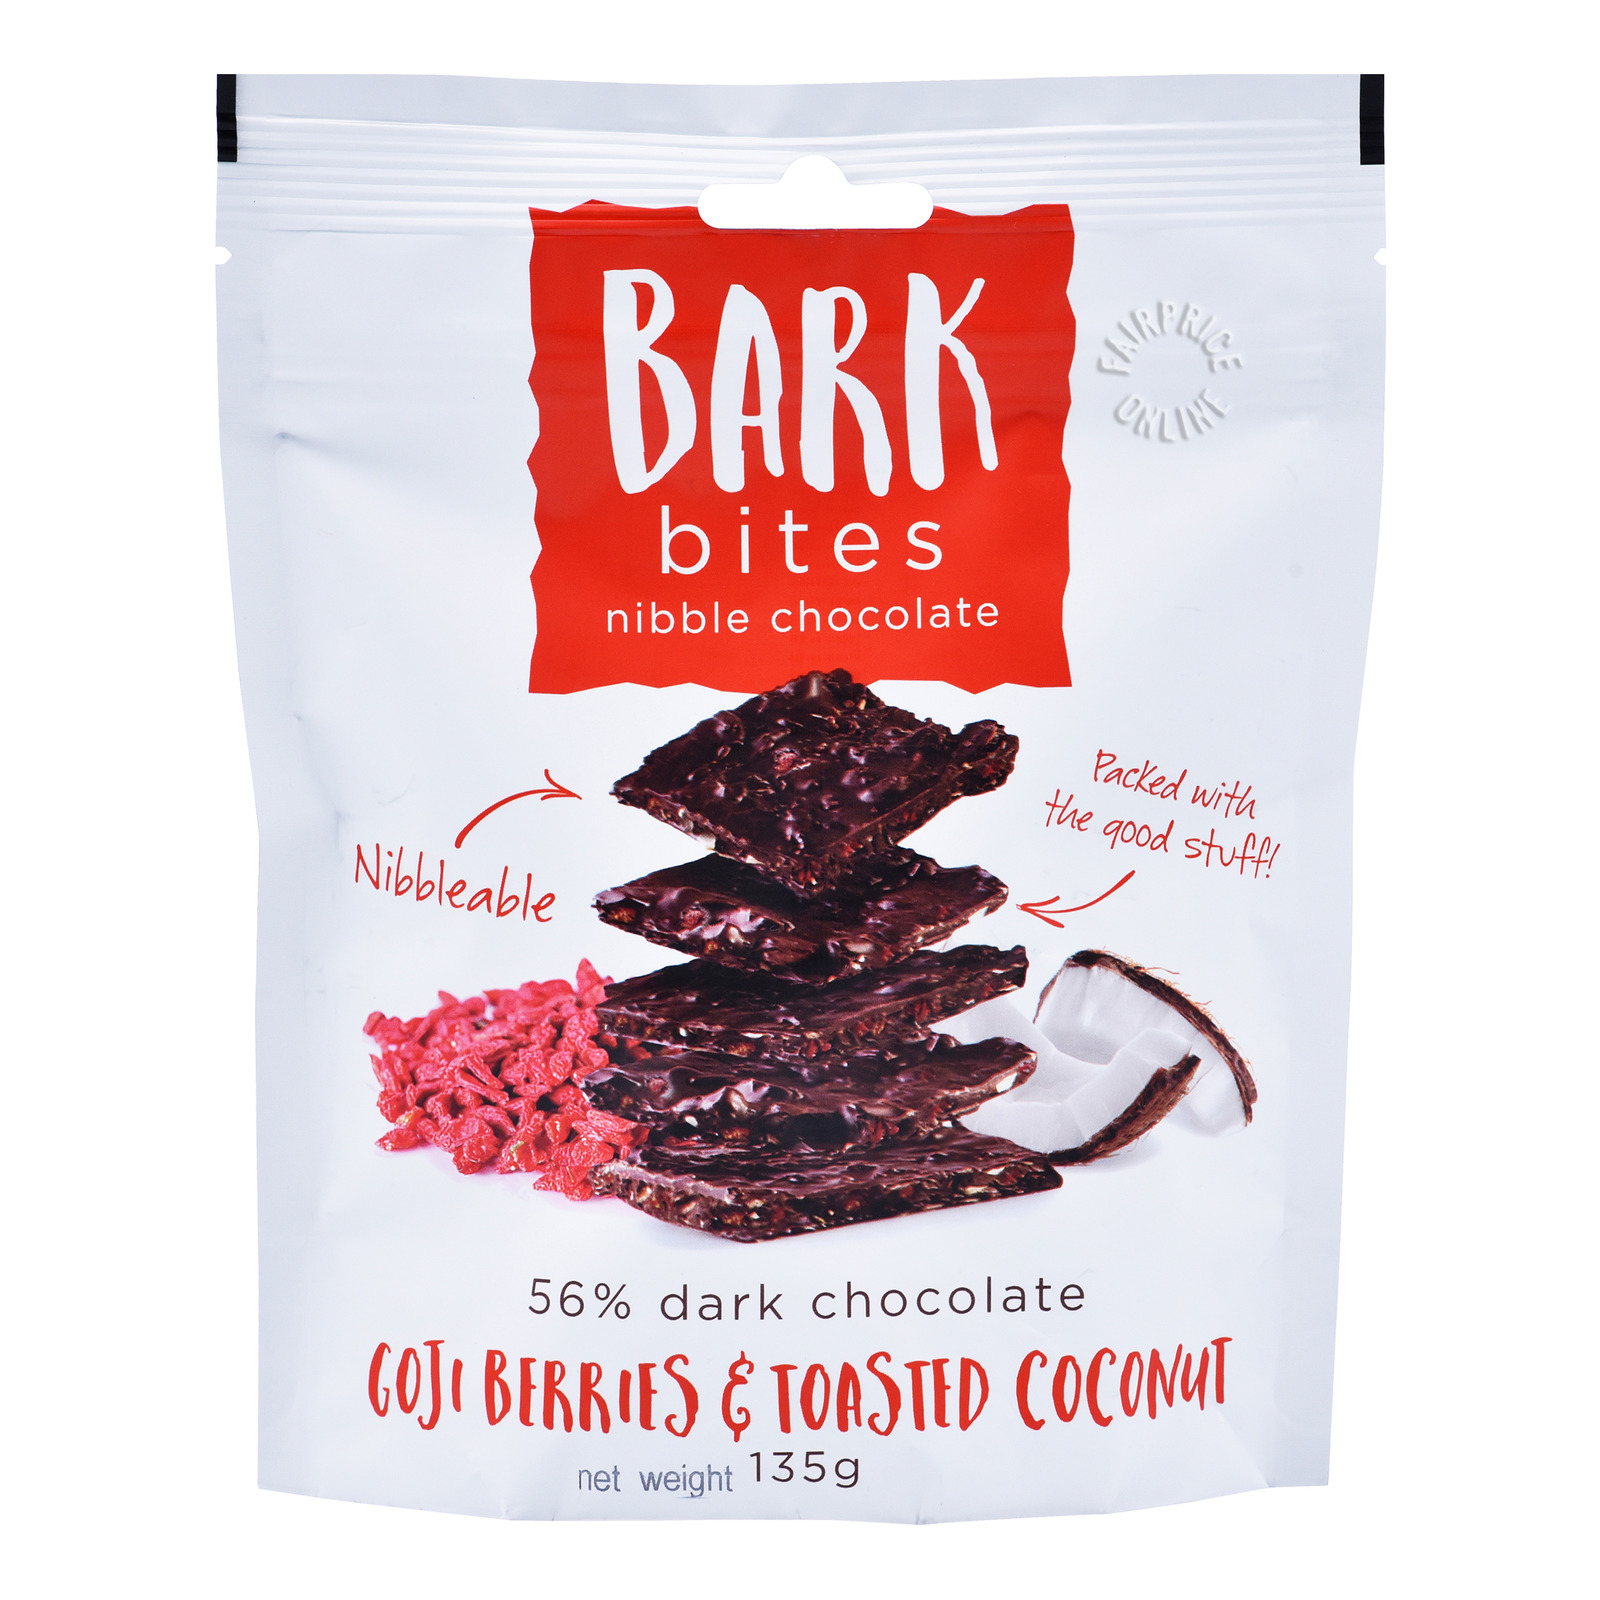 Bark Bites Dark Chocolate Nibble -Goje Berries & Toasted Coconut